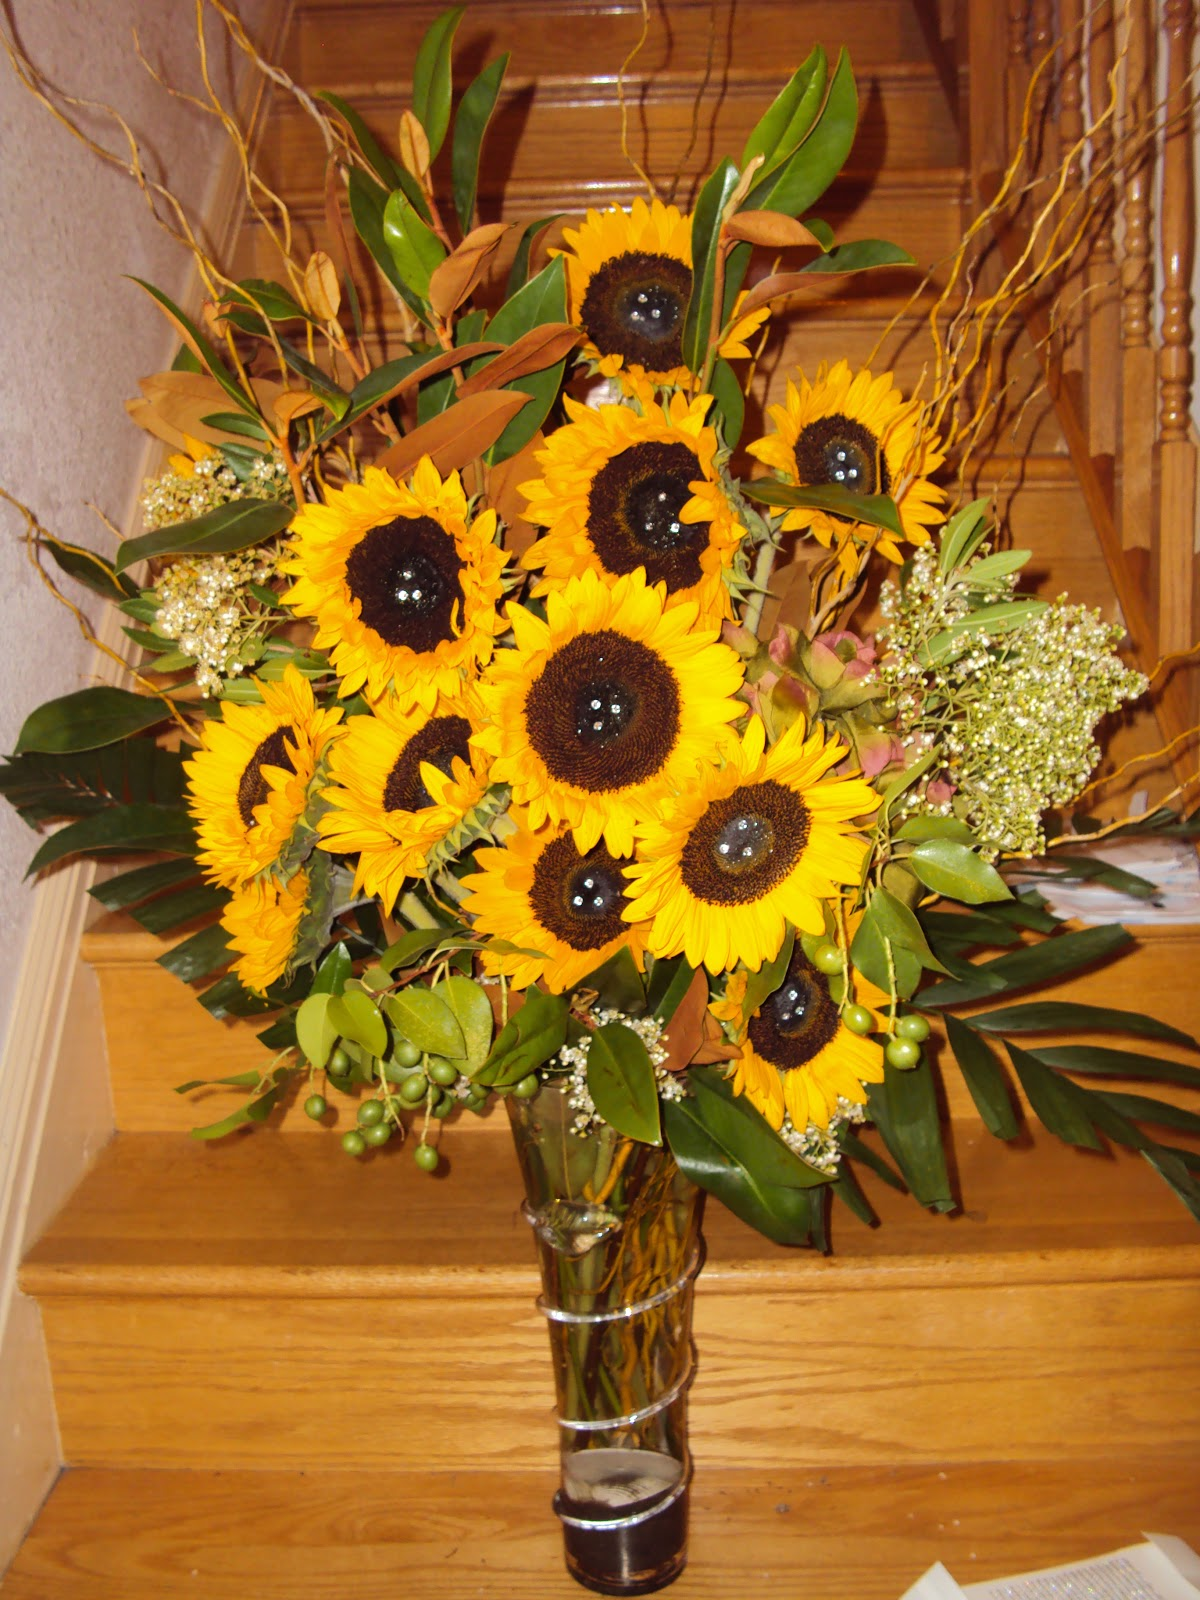 Floral arrangement sunflowers and other yellow flowers